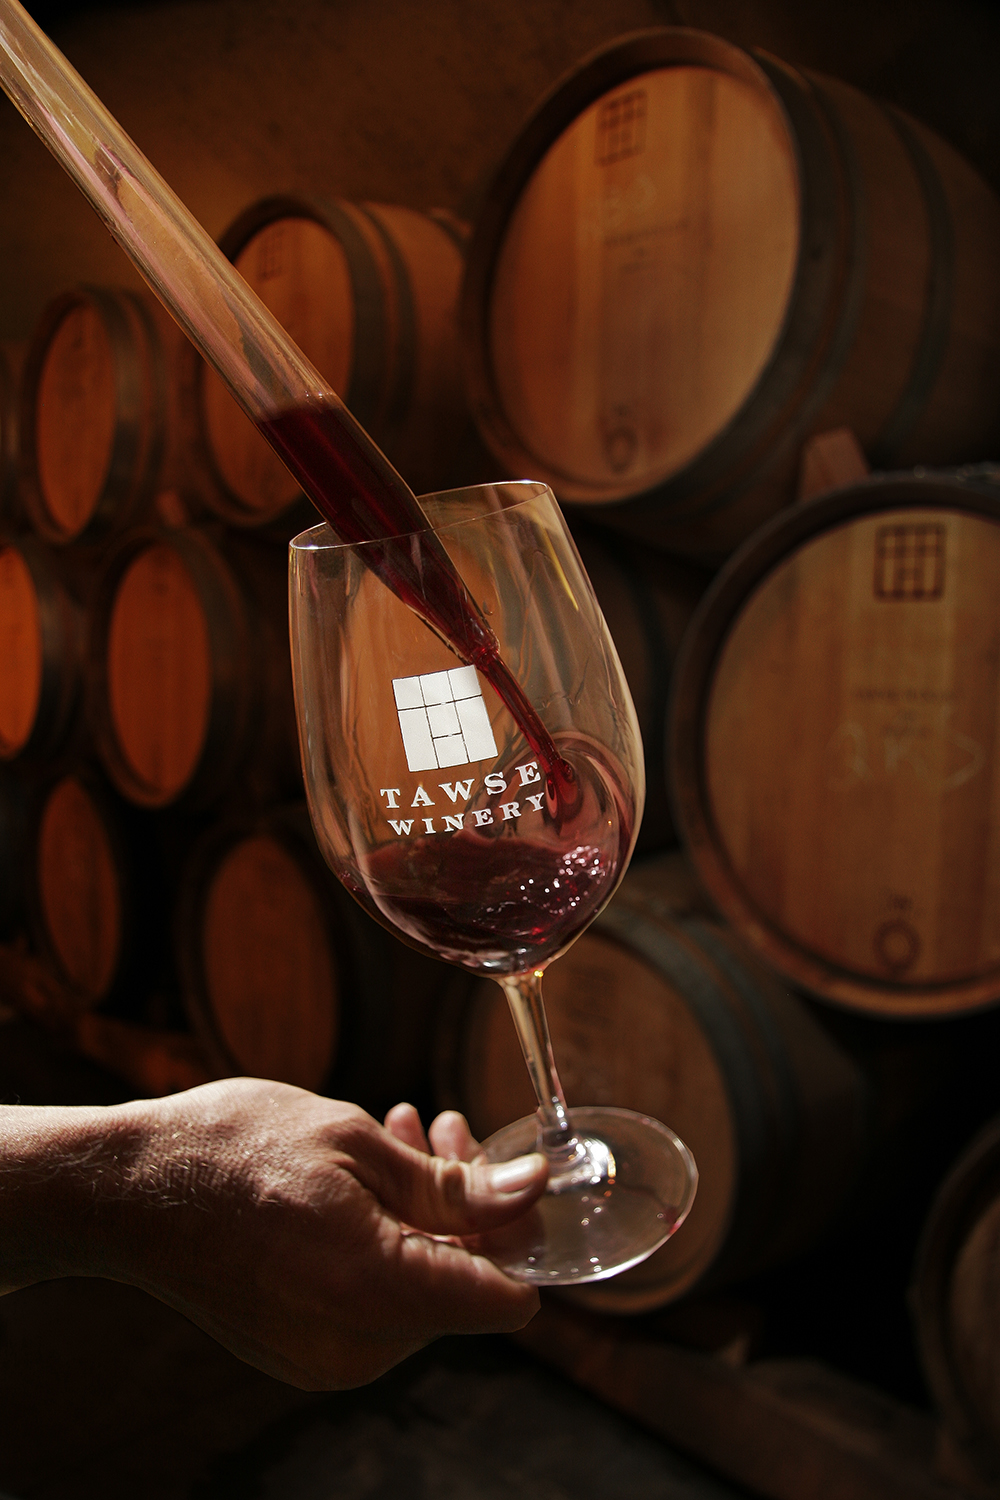 Wine is poured from a wine thief into a glass at Tawse Winery // Photo courtesy Tawse Winery